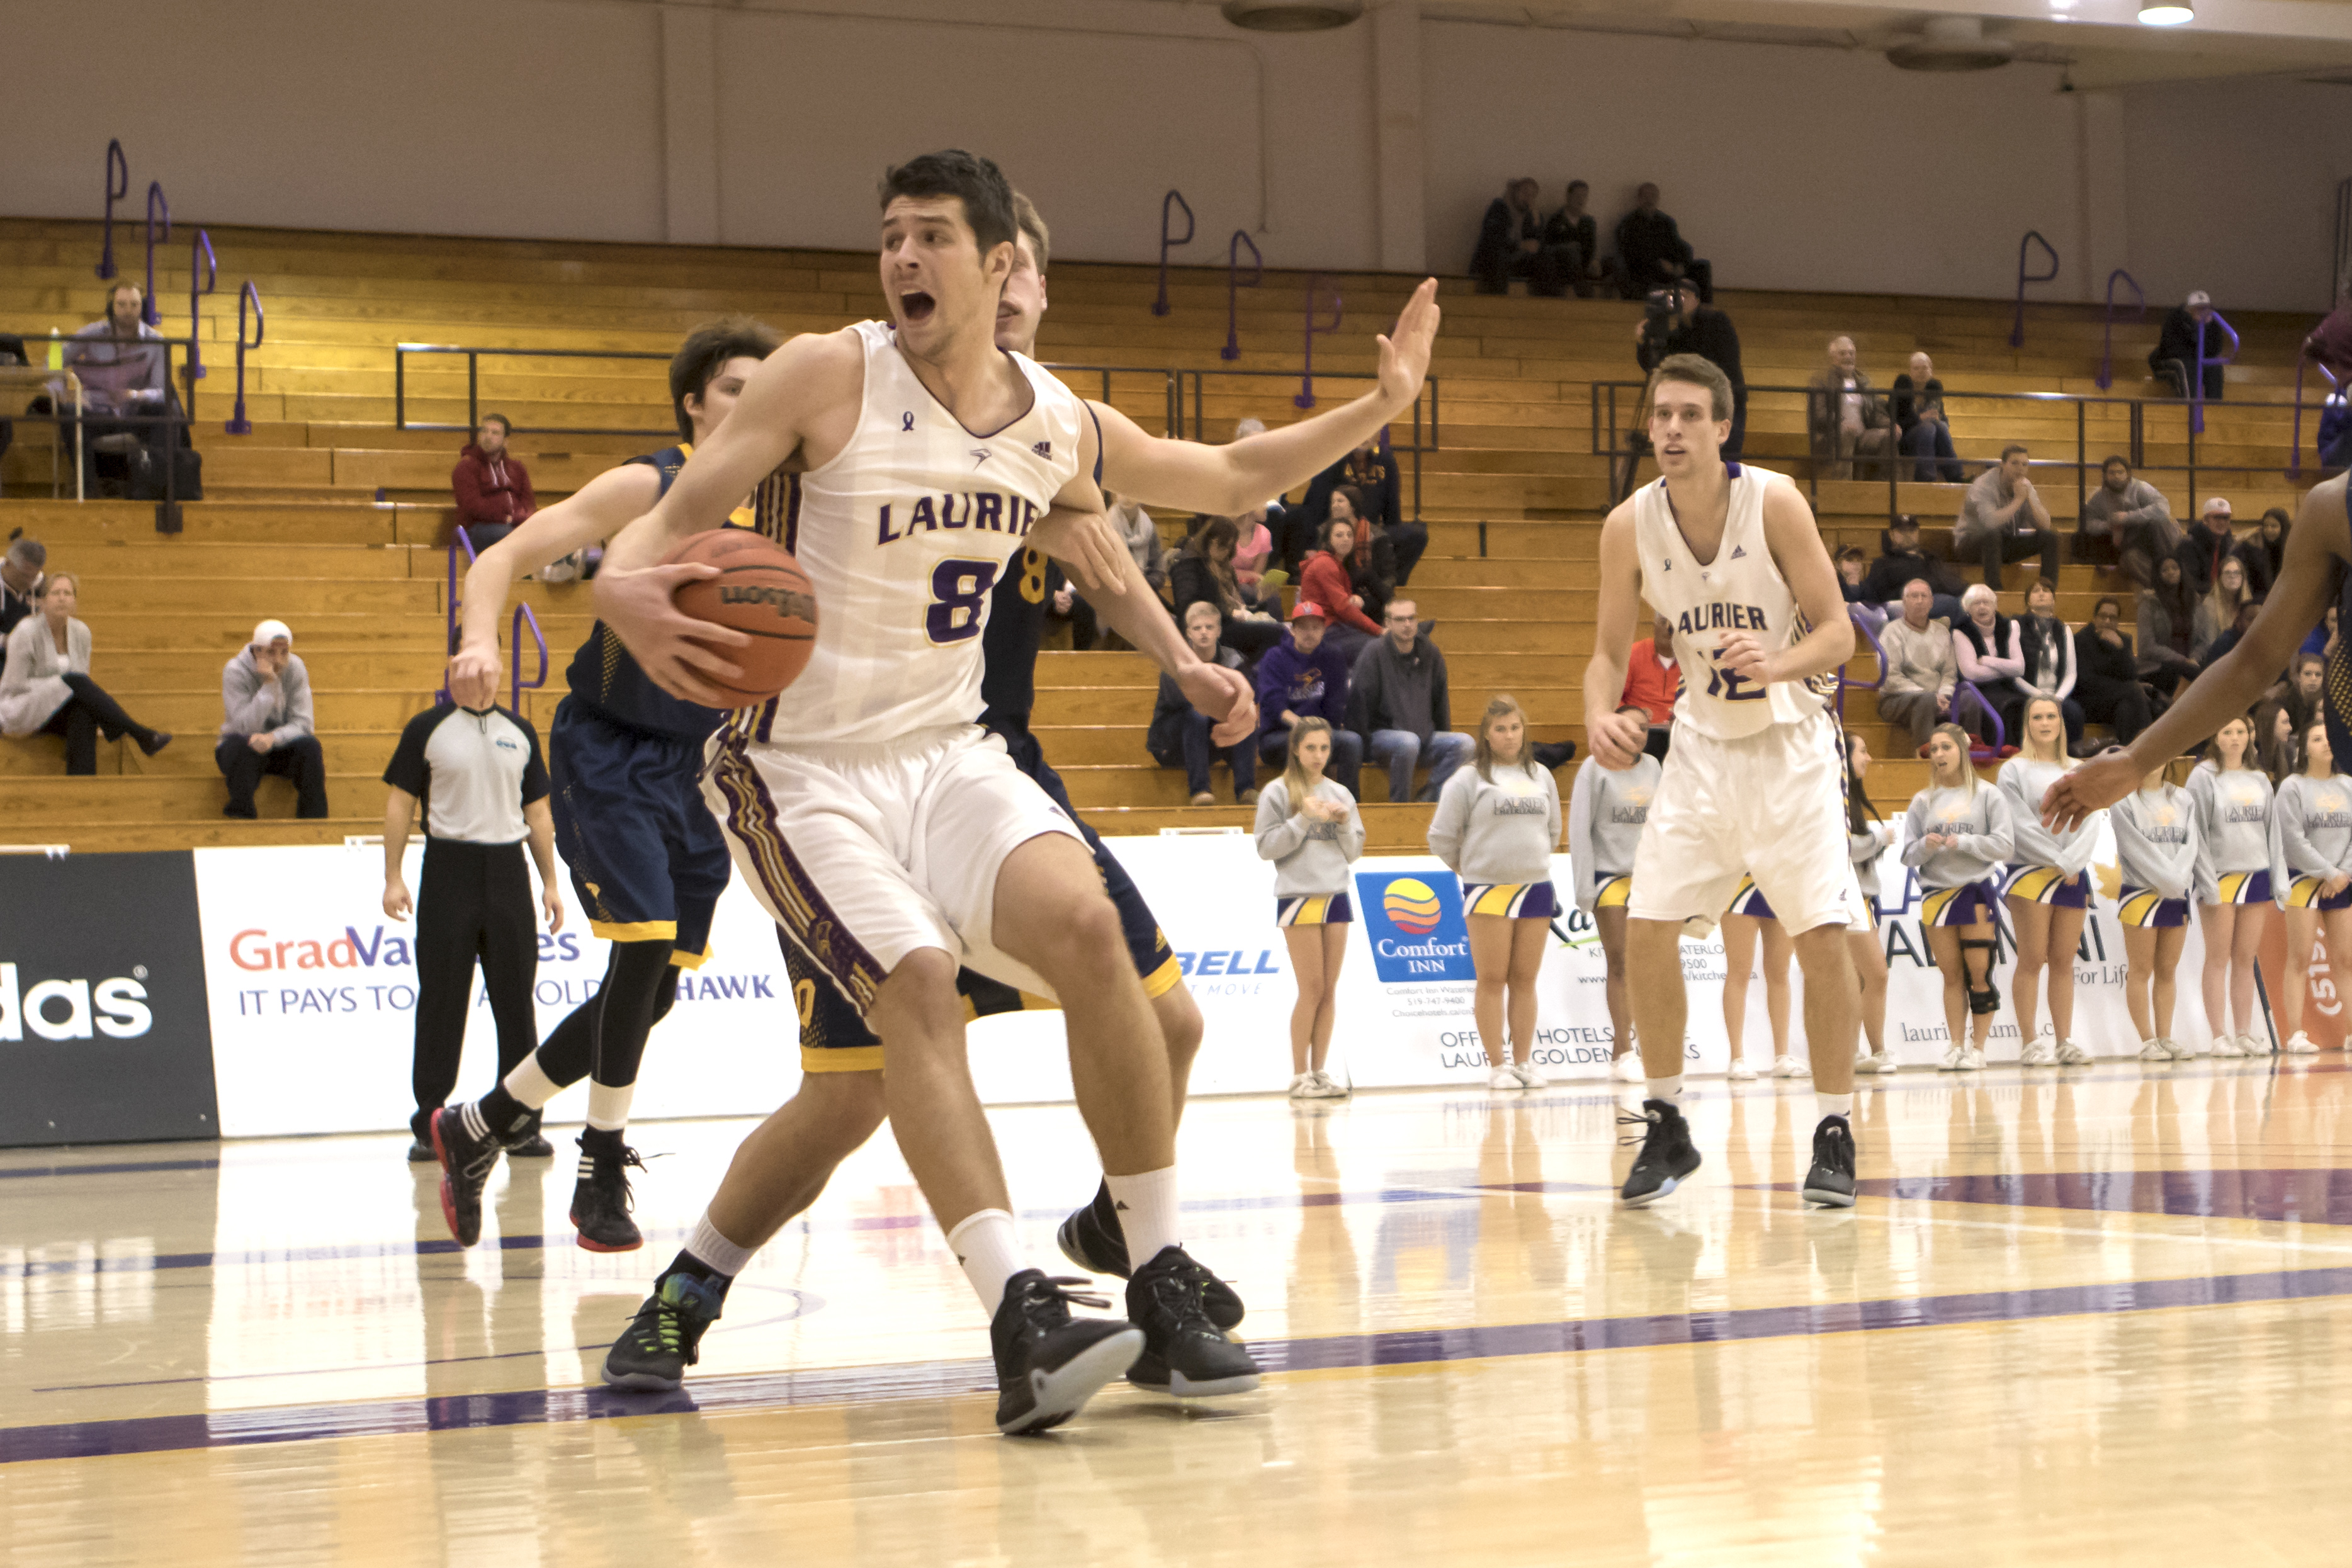 Momentum has been lost after a solid start to the Men's basketball season